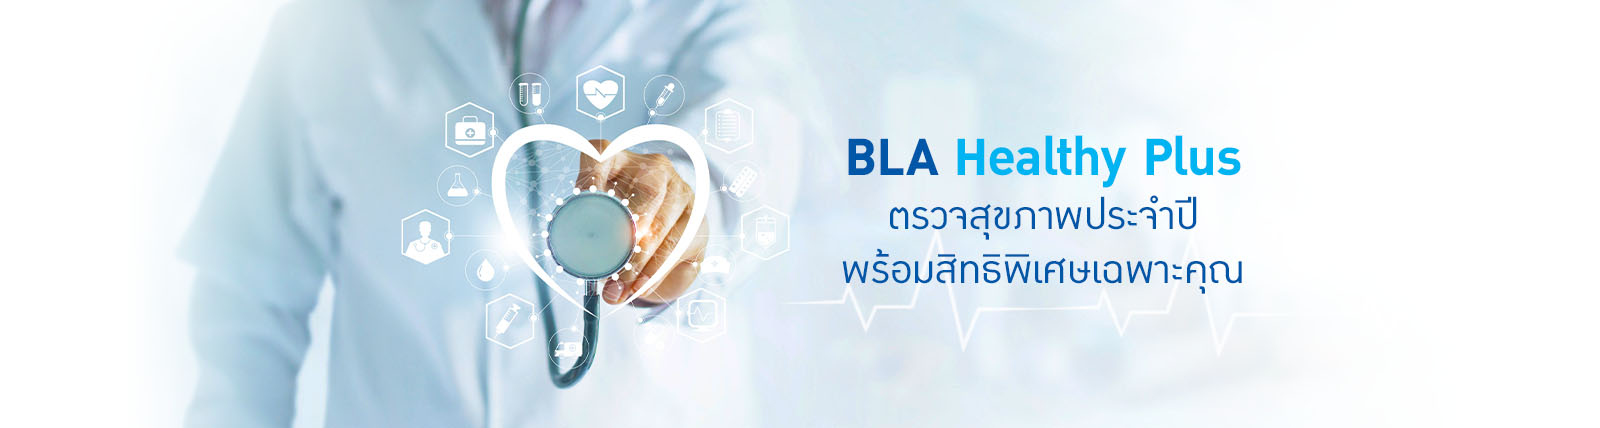 Banner BLA Healthy Plus